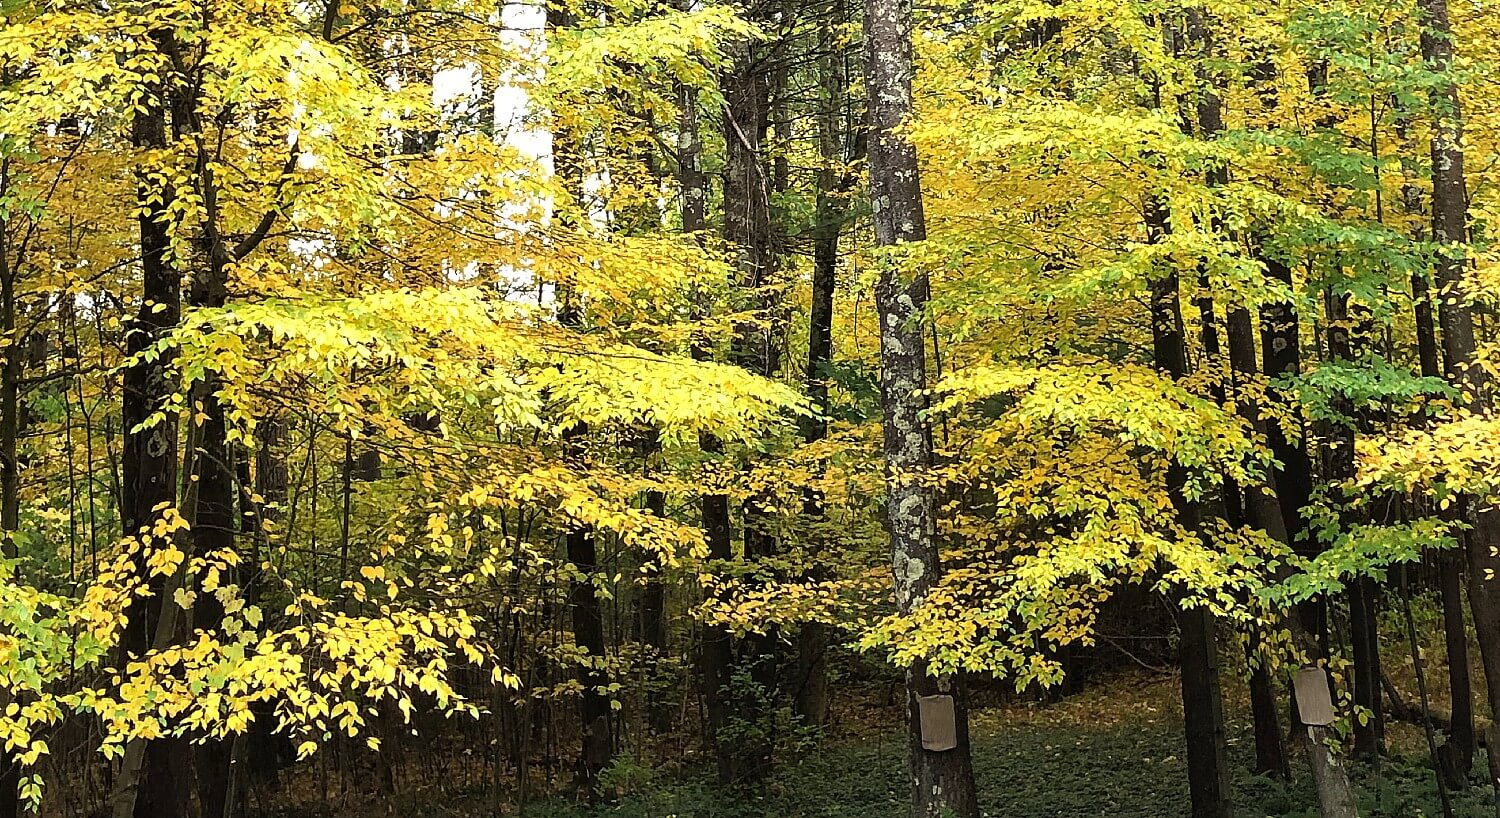 Bright yellow and green foliage in a dense wooded area with square markers on the trees